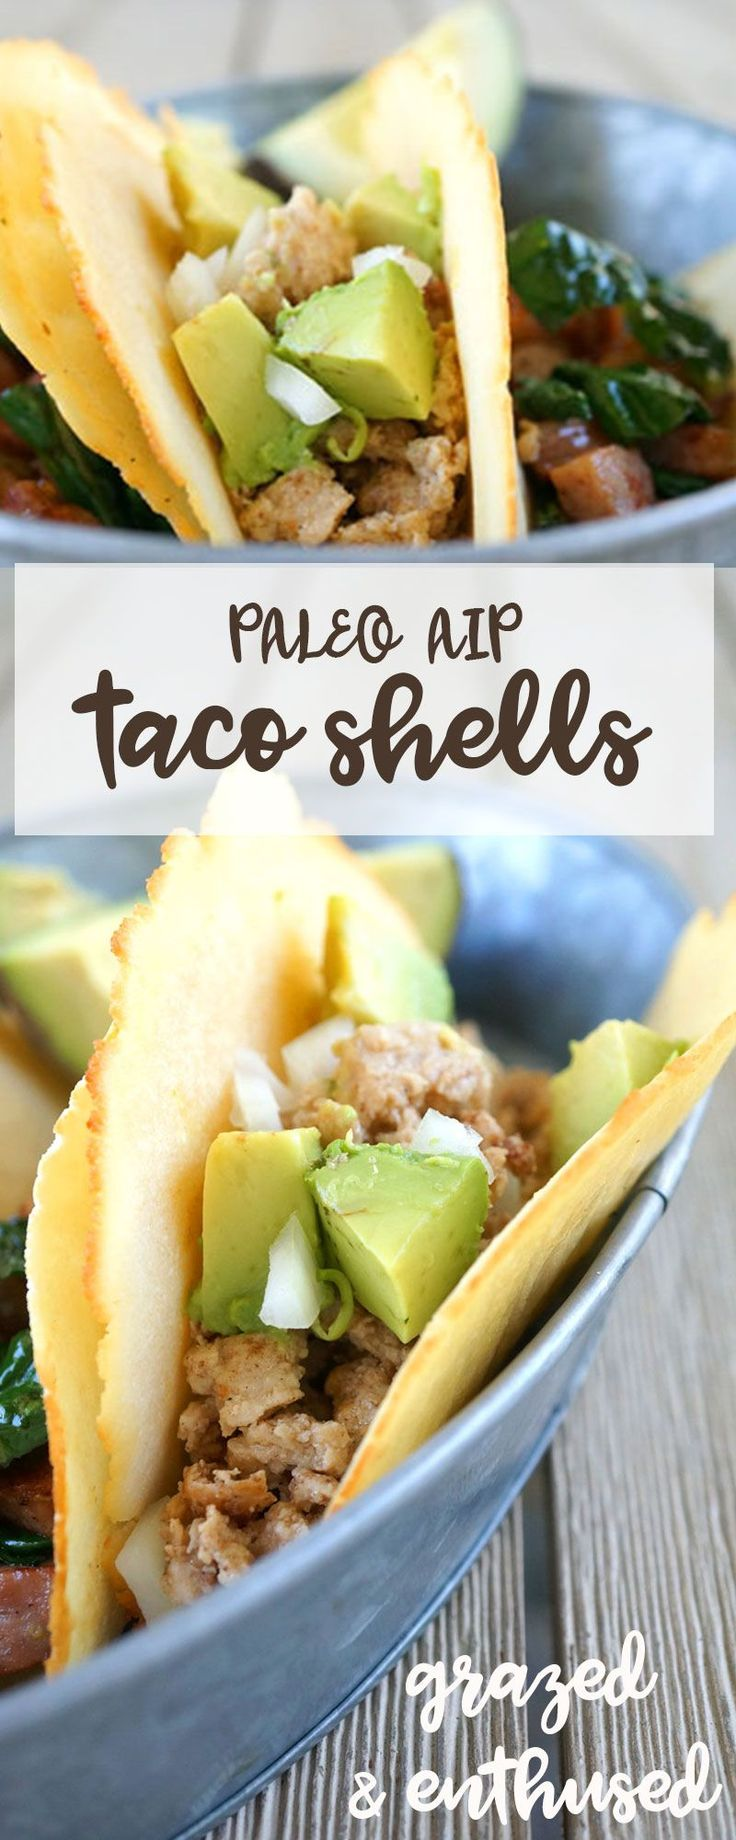 Paleo & AIP Taco Shells and Tortillas Hard & Soft Shell options! | Grazed & Enthused